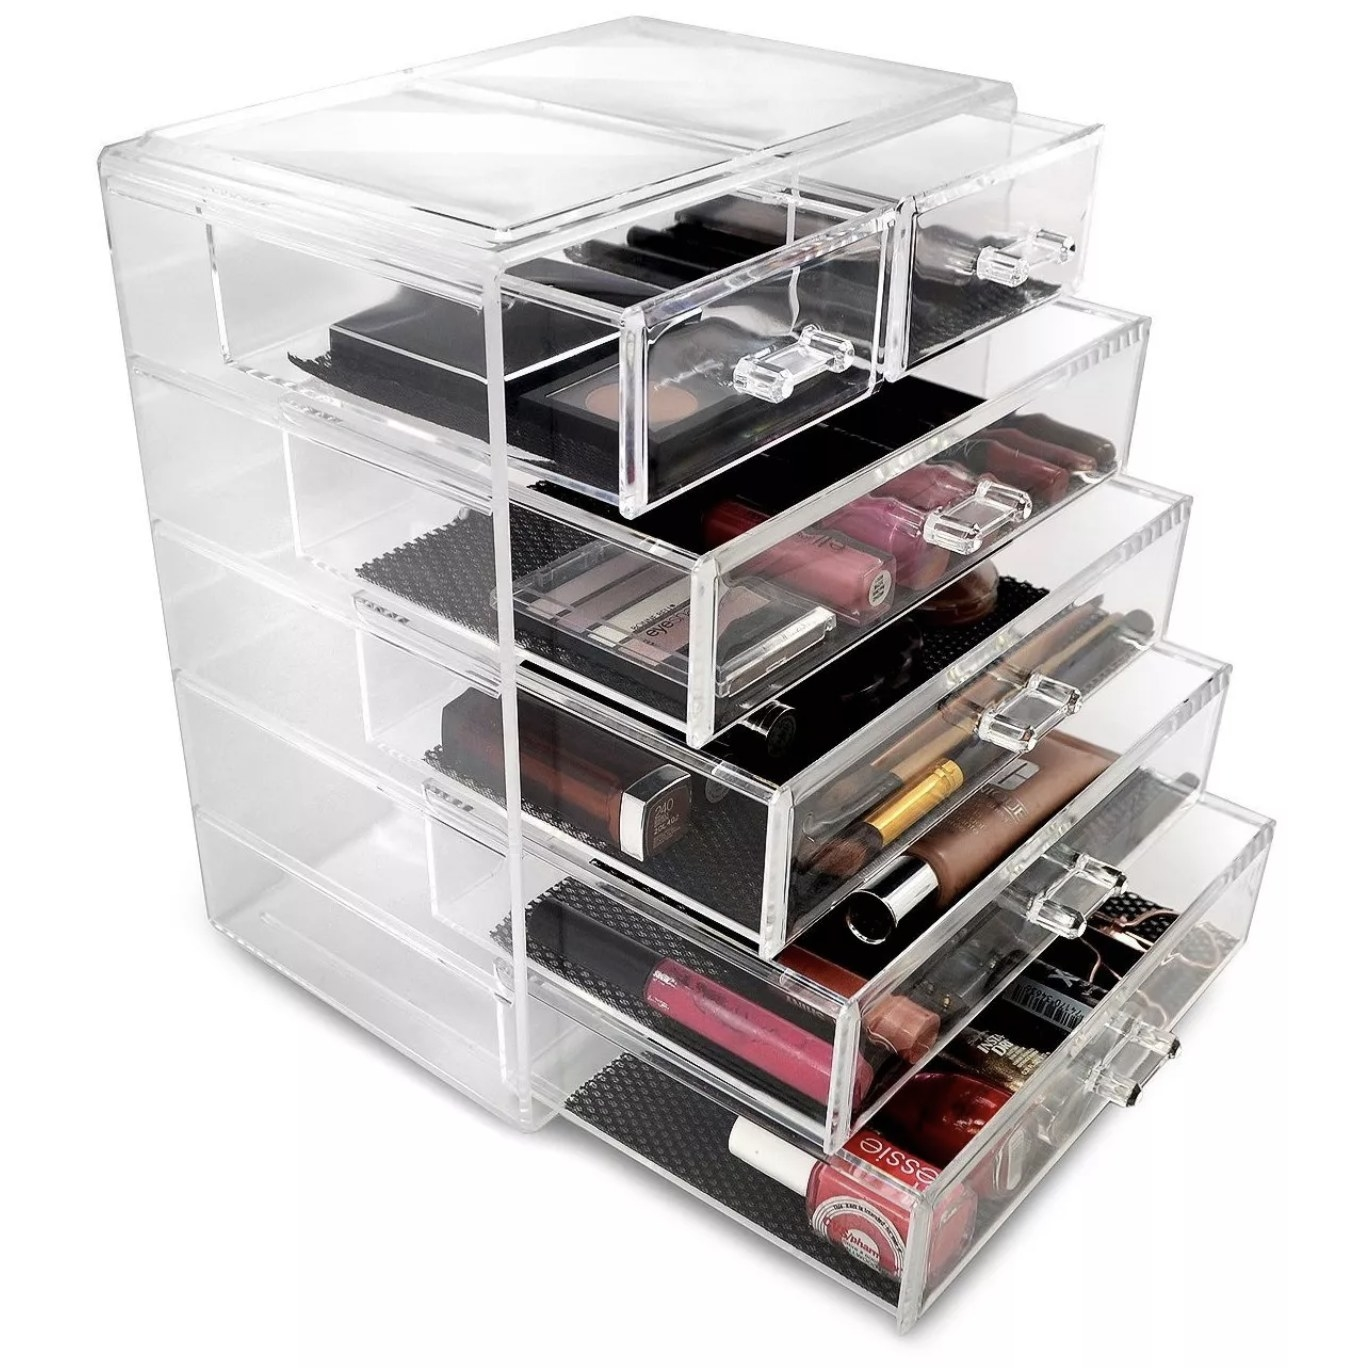 The storage drawers with makeup